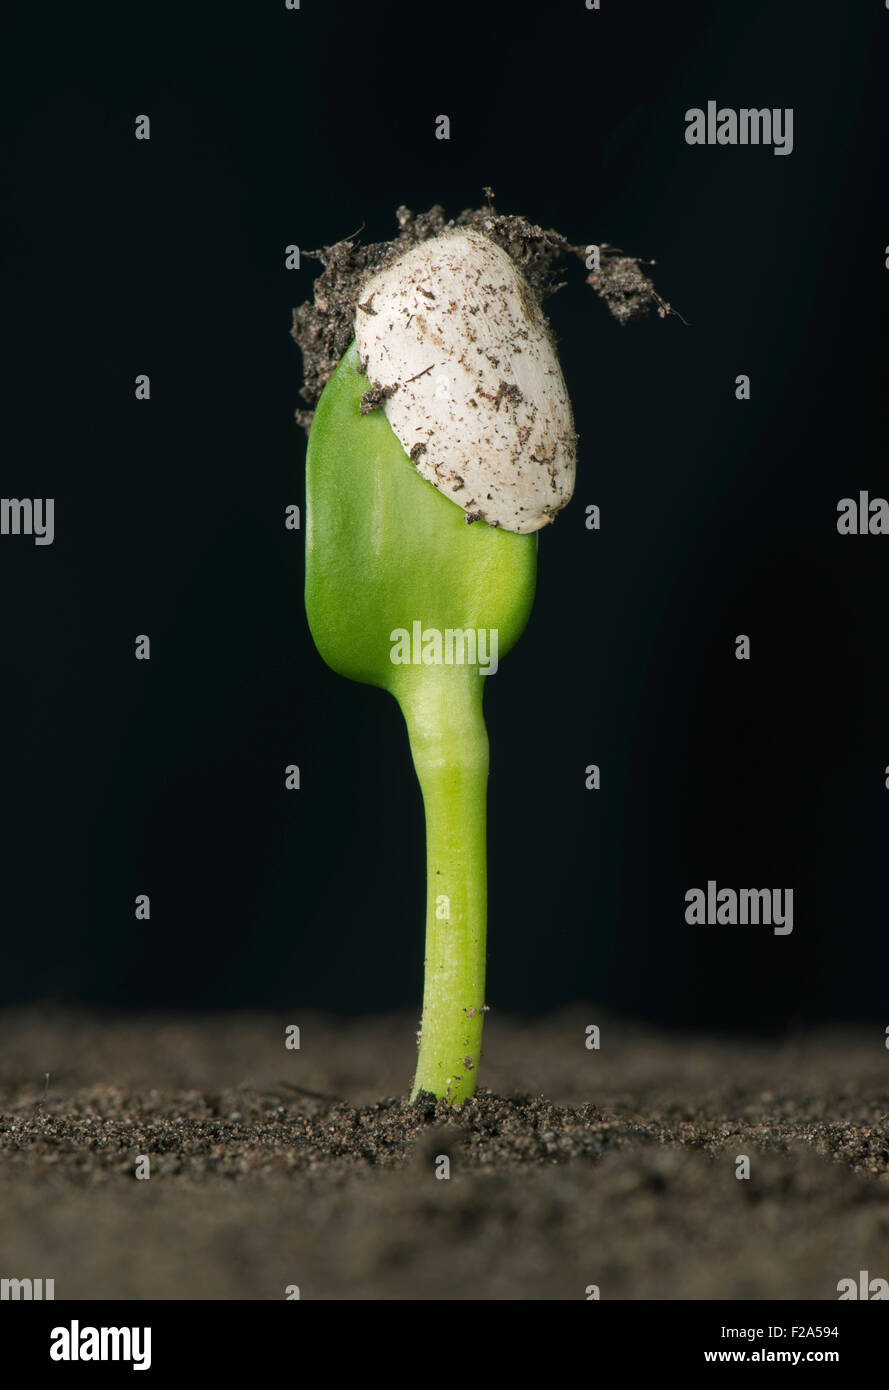 Sunflower seedling with cotyledons still trapped inside the seed coat or pericarp after germination - Stock Image